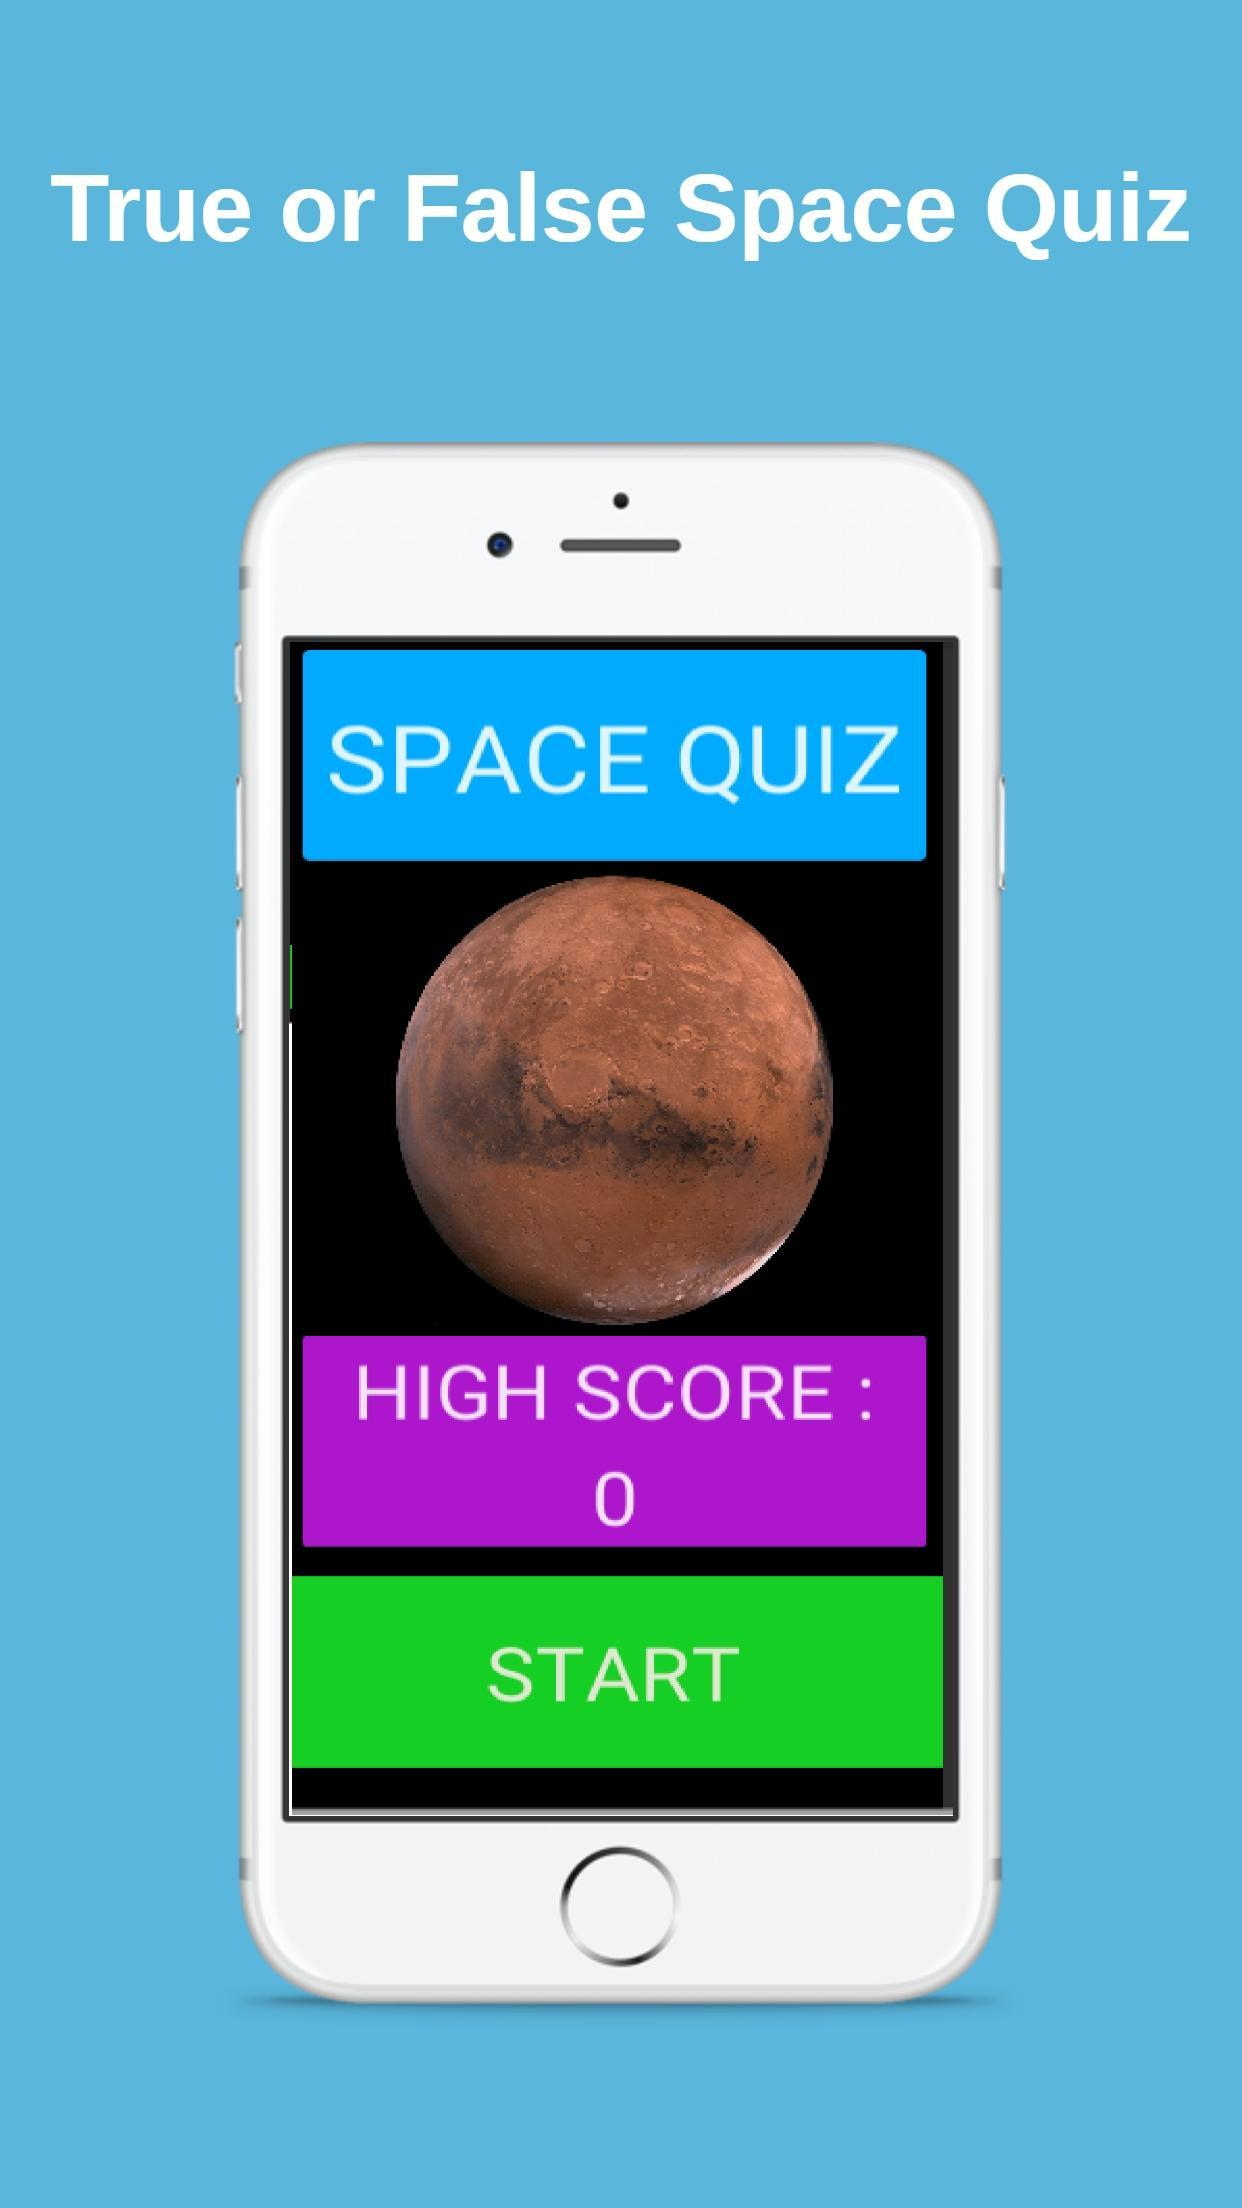 Galactic Space Quiz: True or False for Android - APK Download